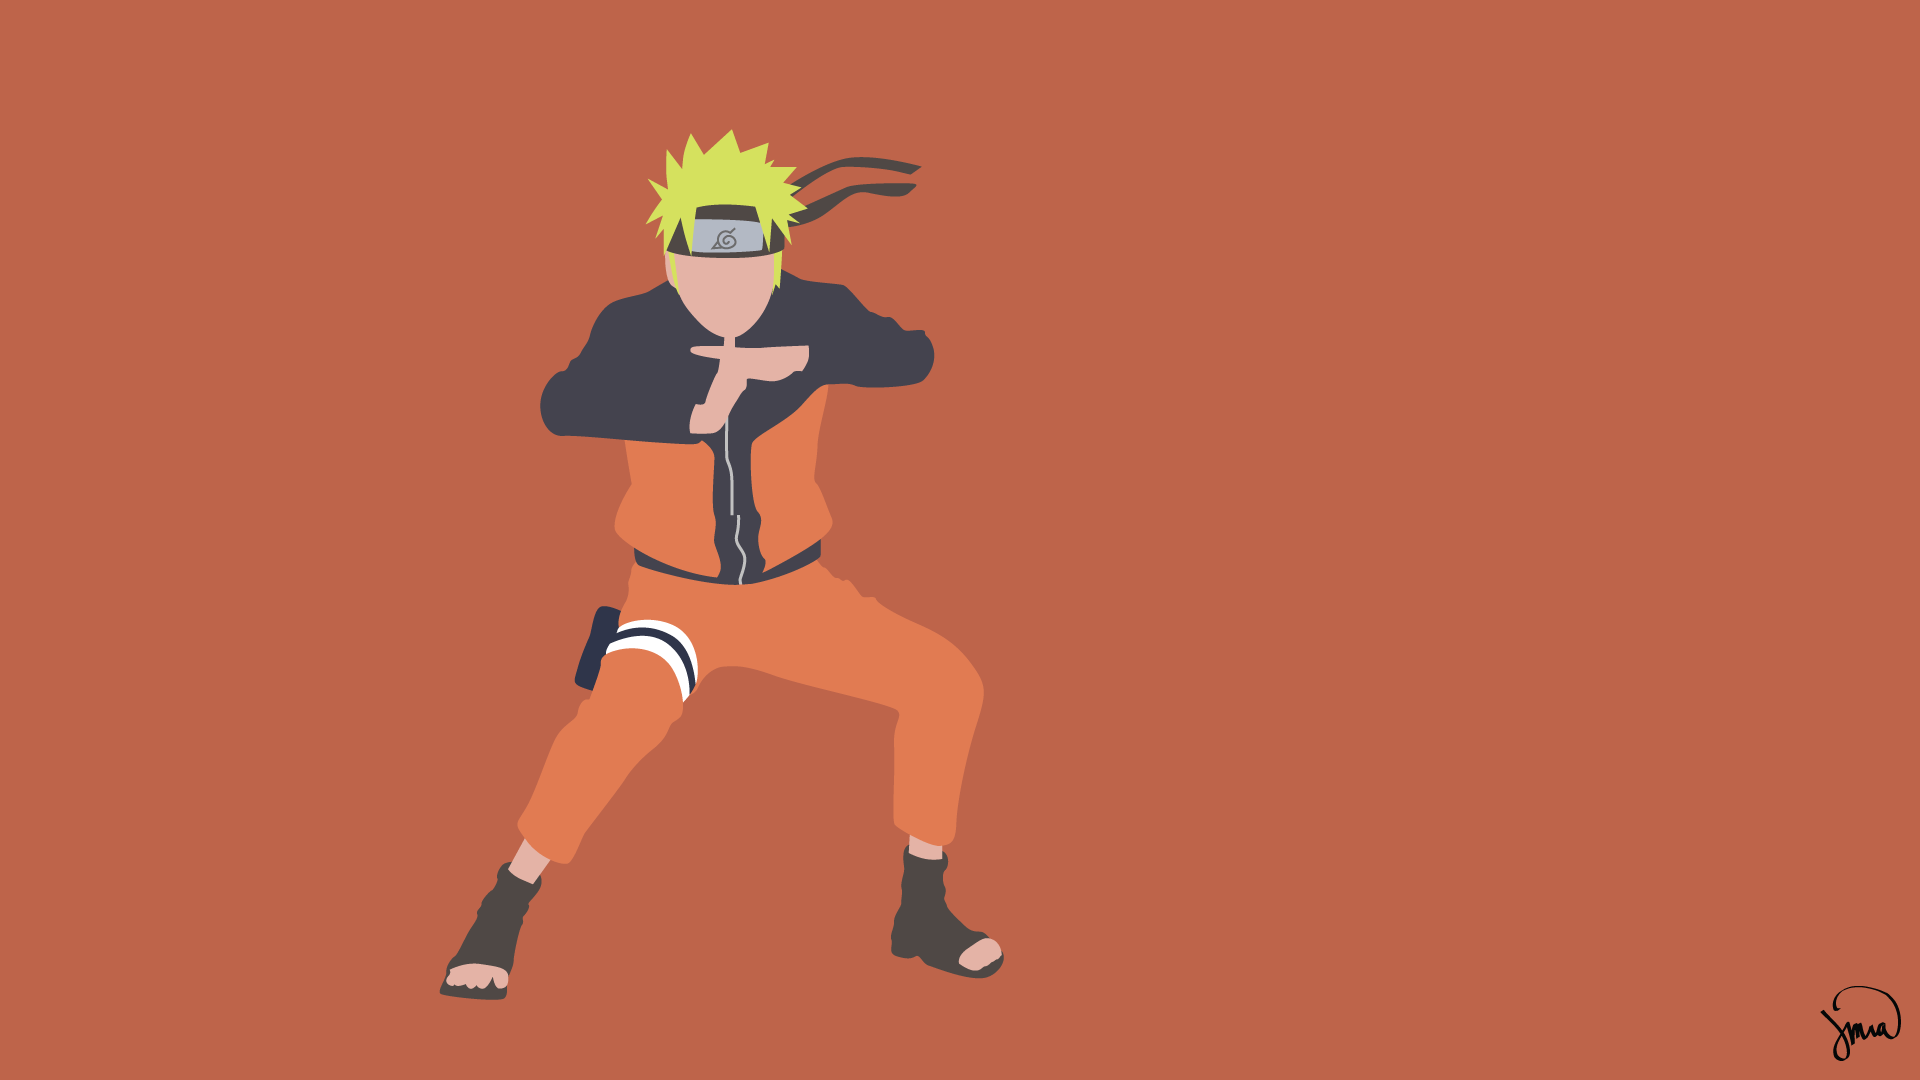 Naruto Uzumaki Full HD Wallpapers and Backgrounds